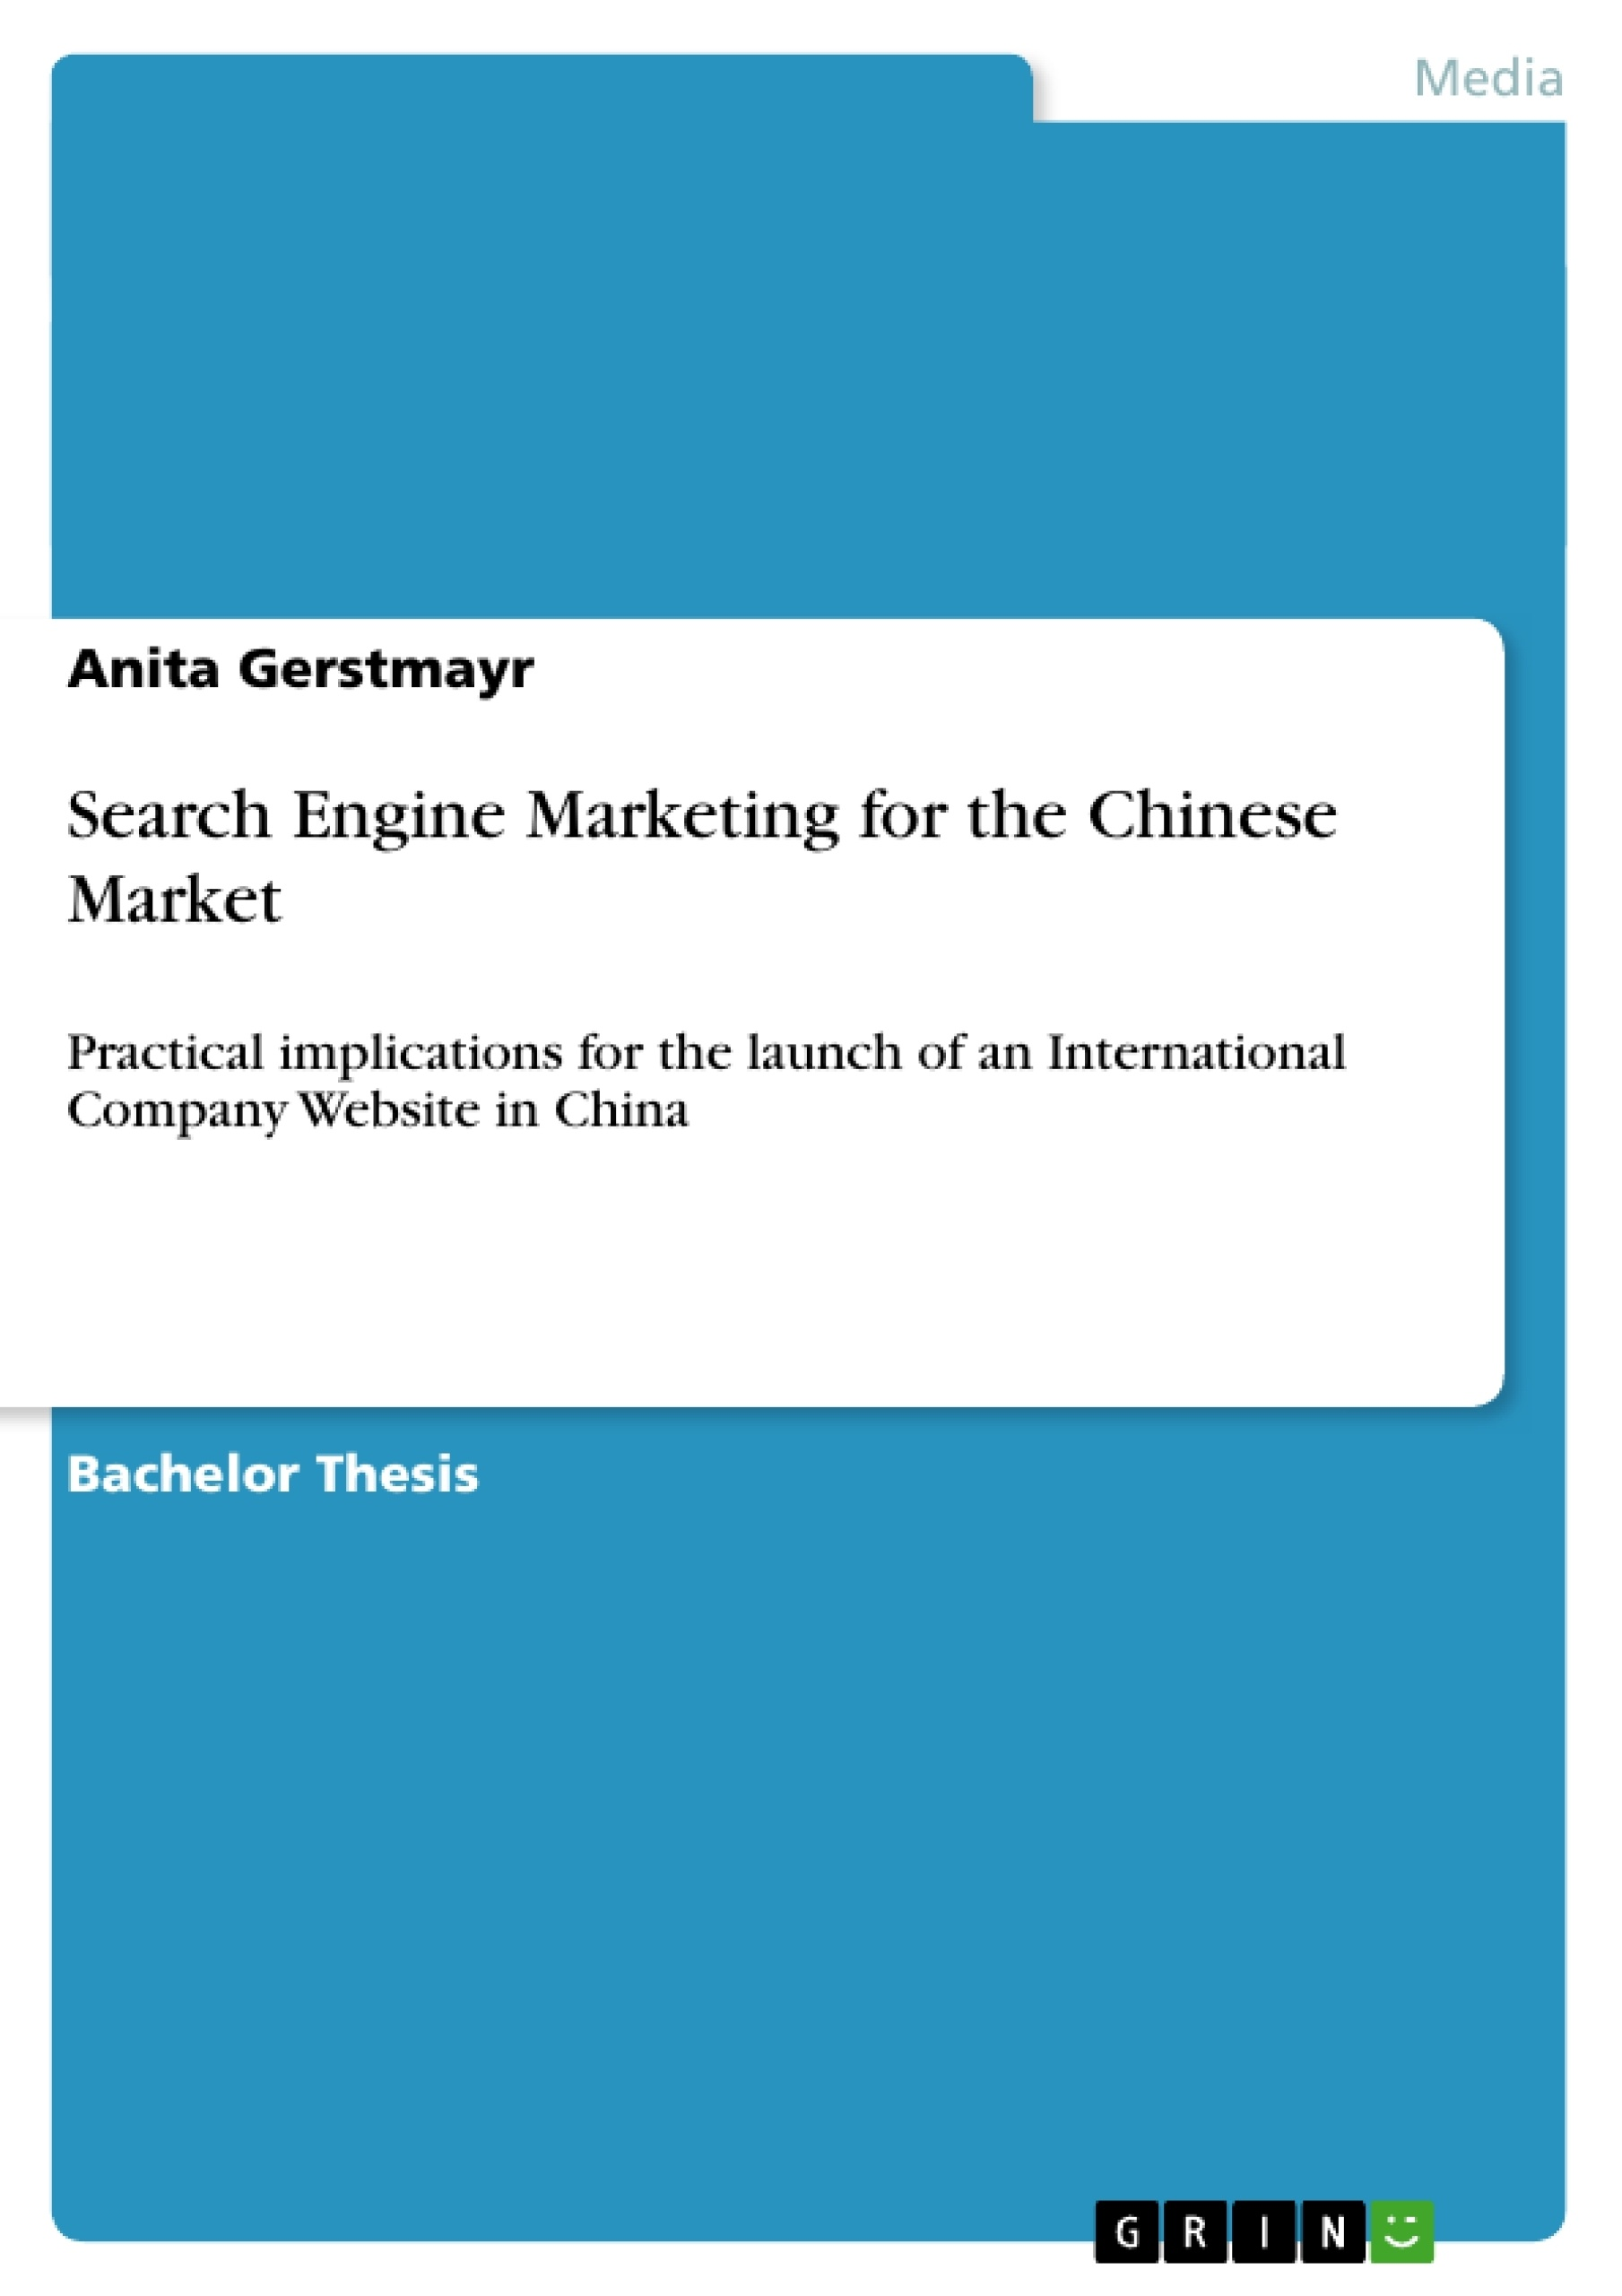 Title: Search Engine Marketing for the Chinese Market